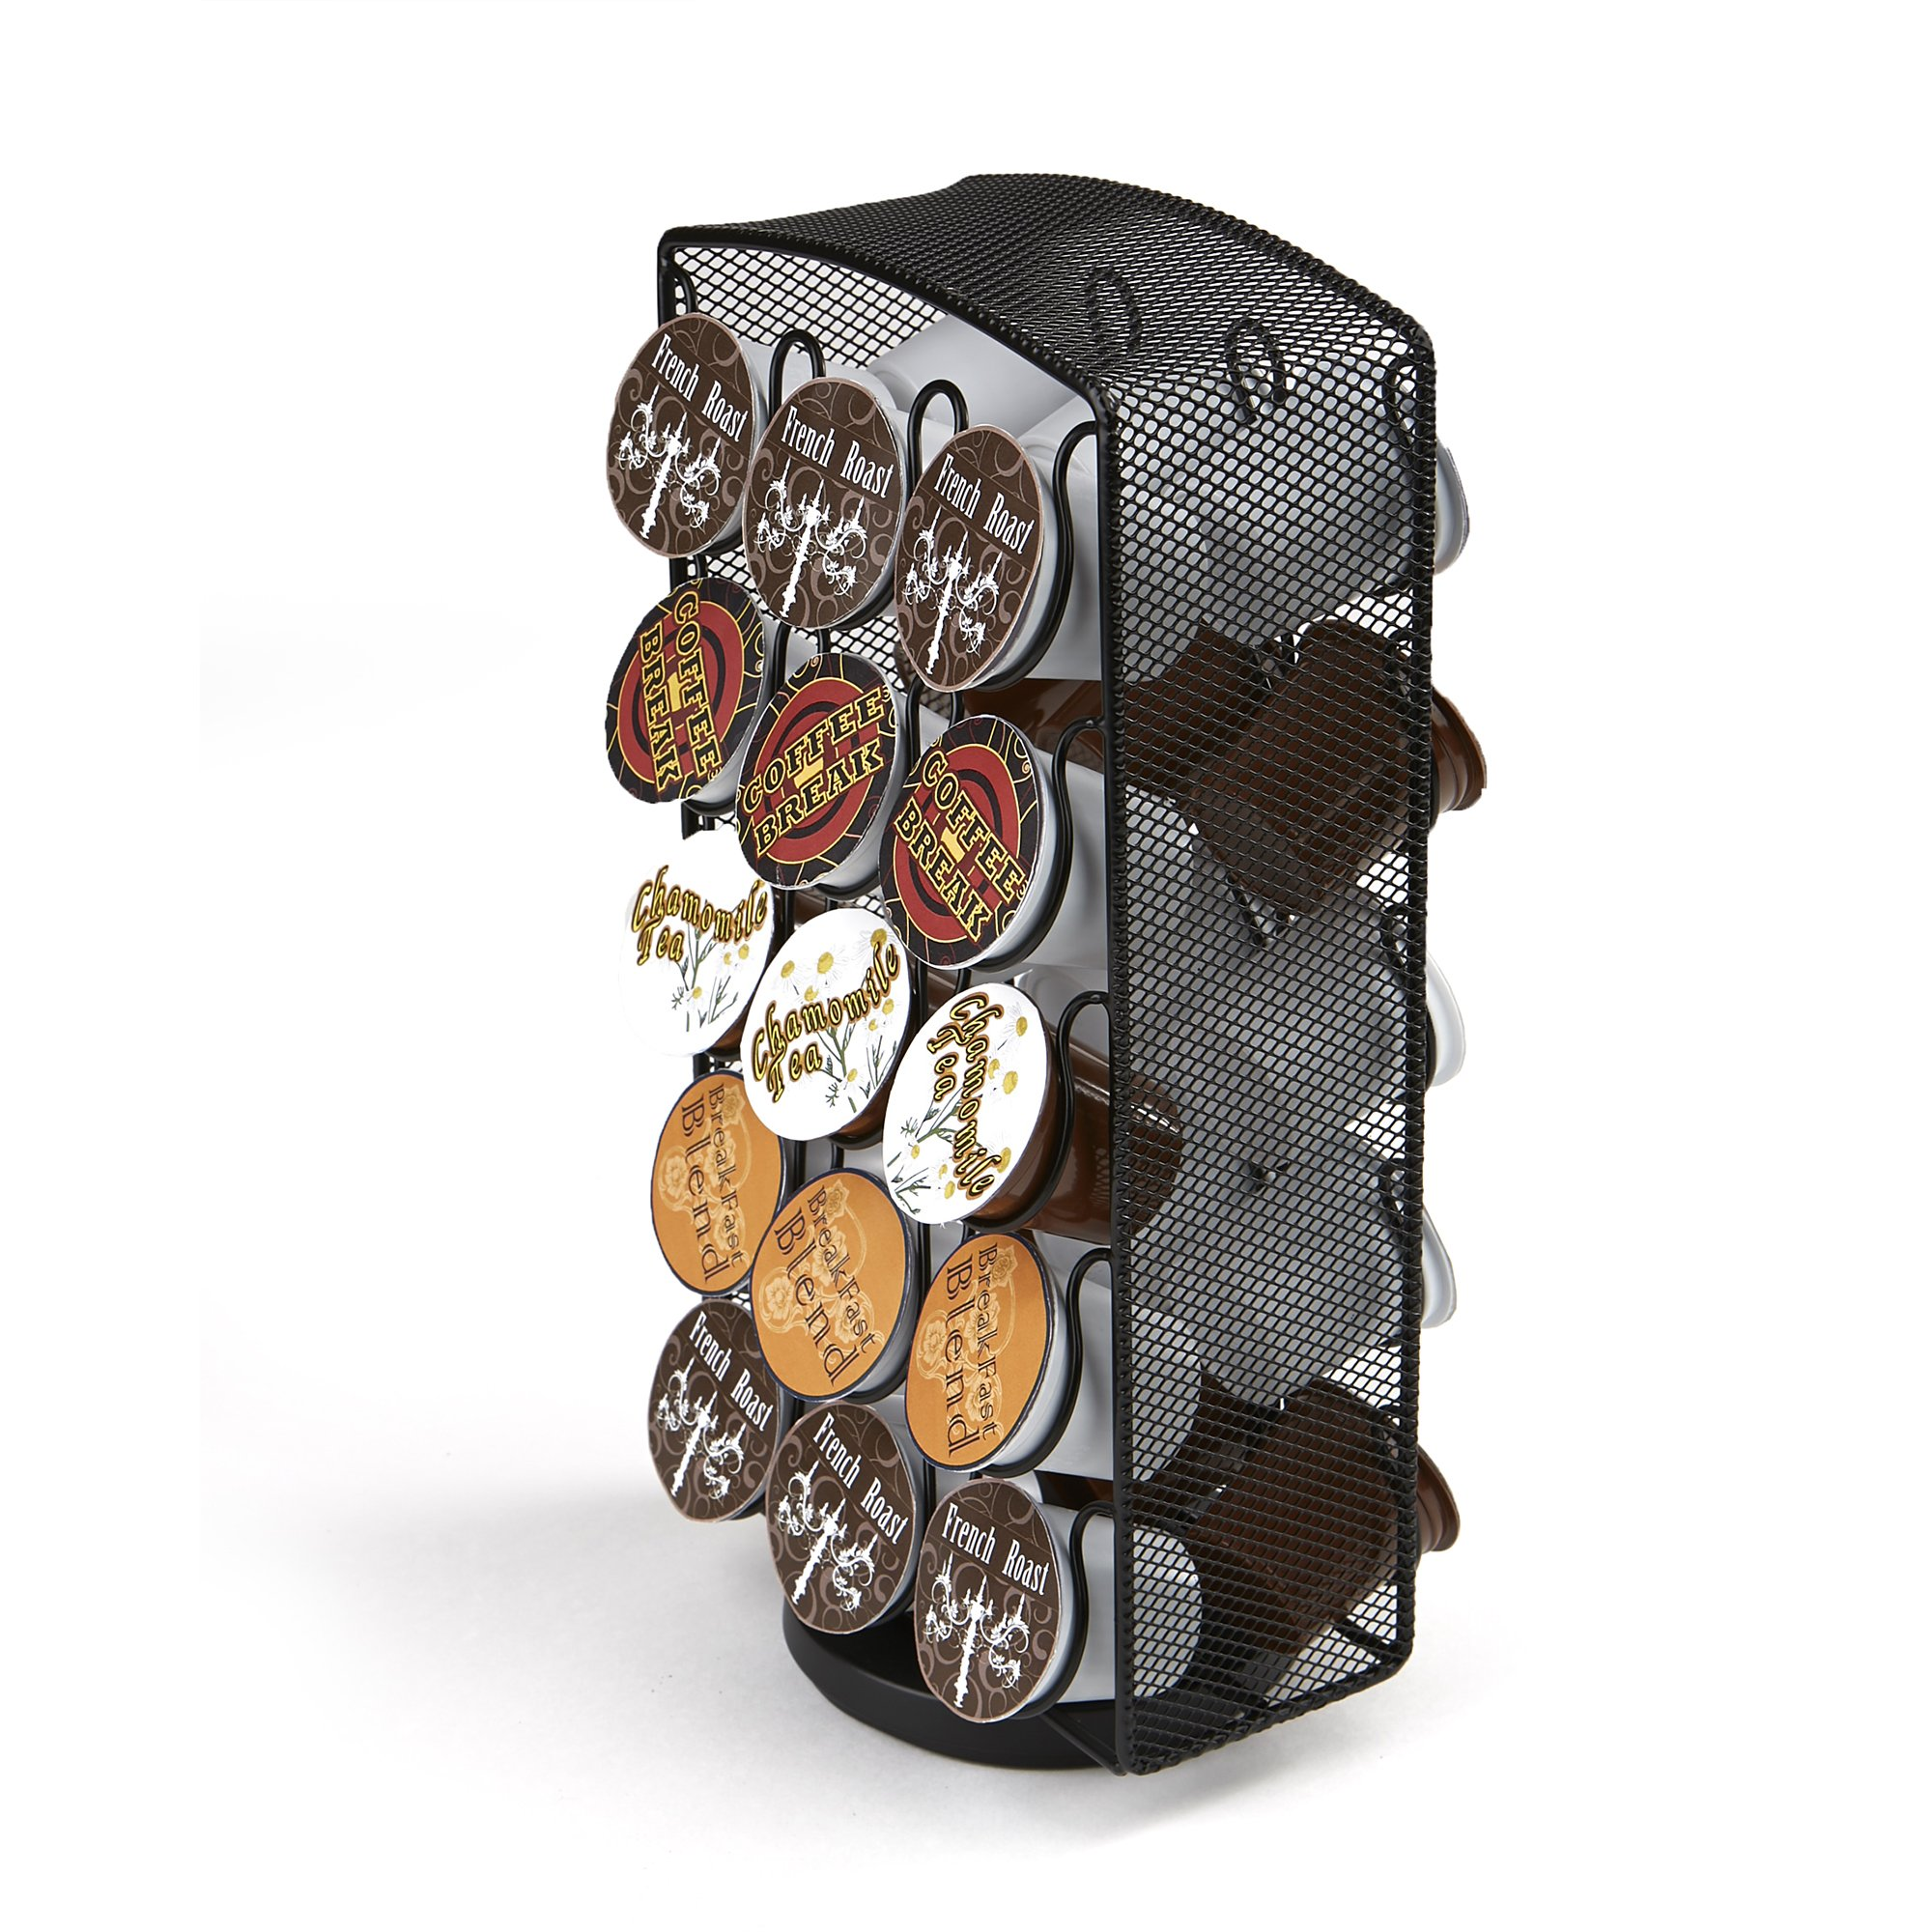 Mind Reader K-Cup Carousel, Holds 30 K-Cups, Coffee Pod Holders, Black Metal Mesh by Mind Reader